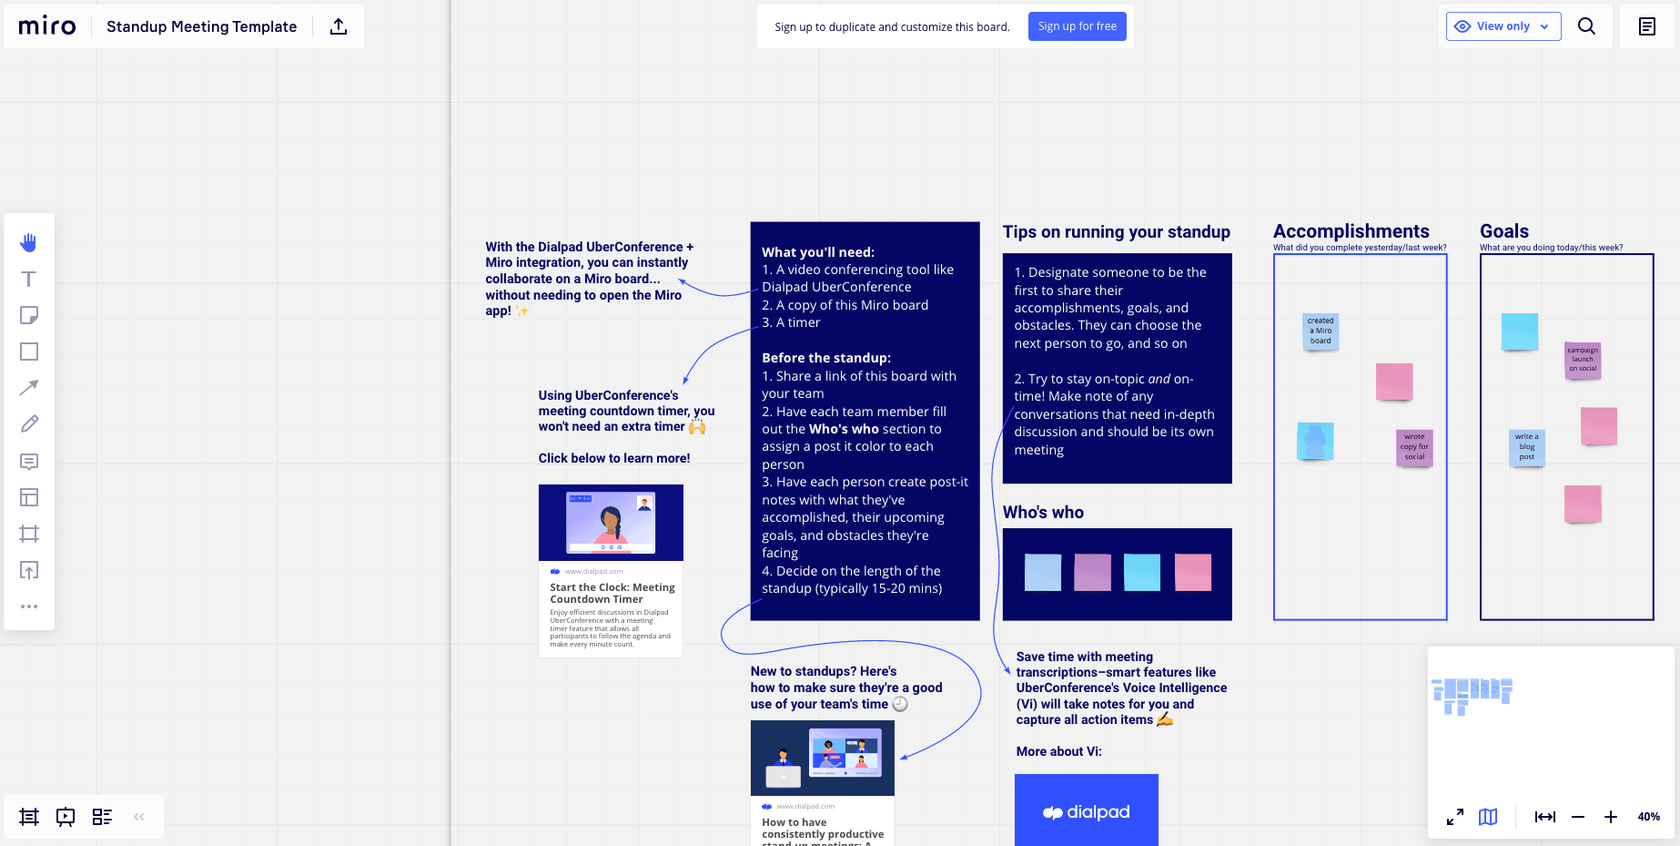 miroverse template for standup meetings